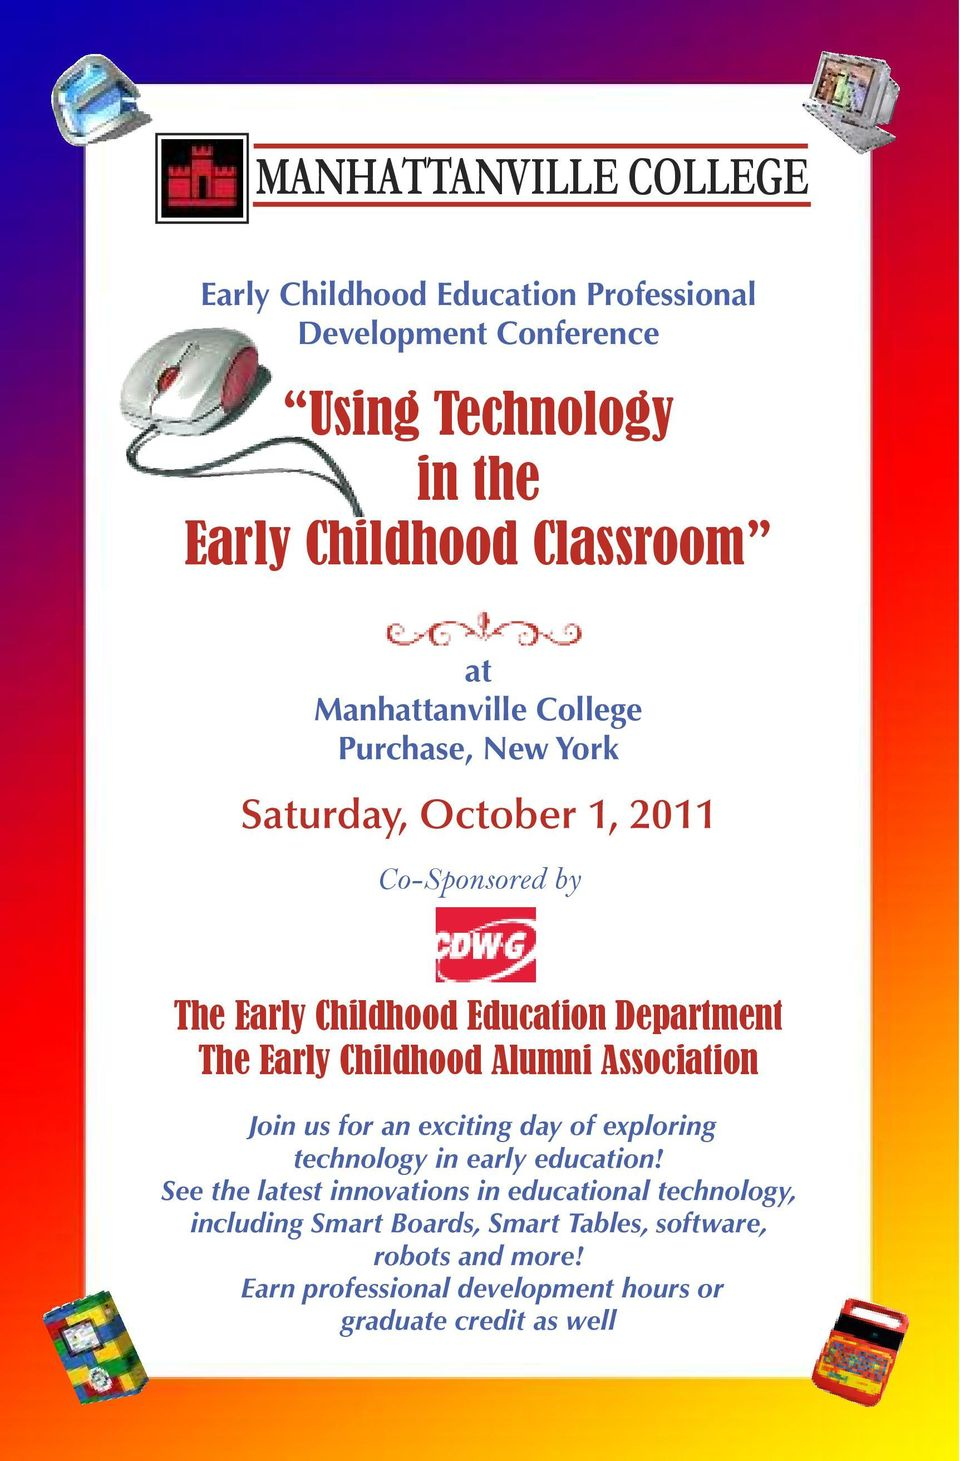 Childhood Alumni Association Join us for an exciting day of exploring technology in early education!